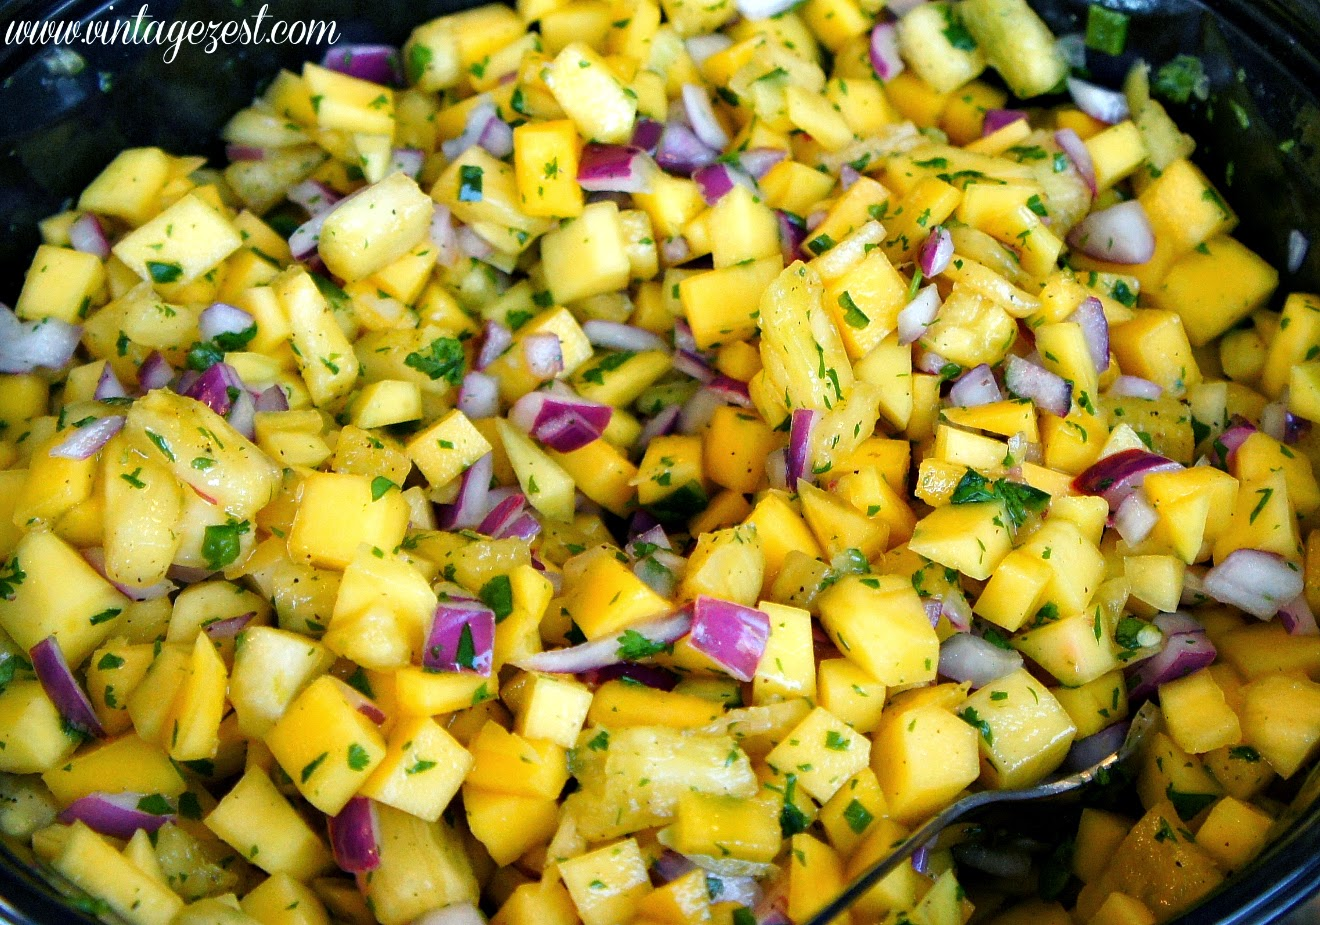 Grilled Tilapia with Spicy Mango Pineapple Salsa on Diane's Vintage Zest! #recipe #shop #cbias #GOWalmart #WMT5663